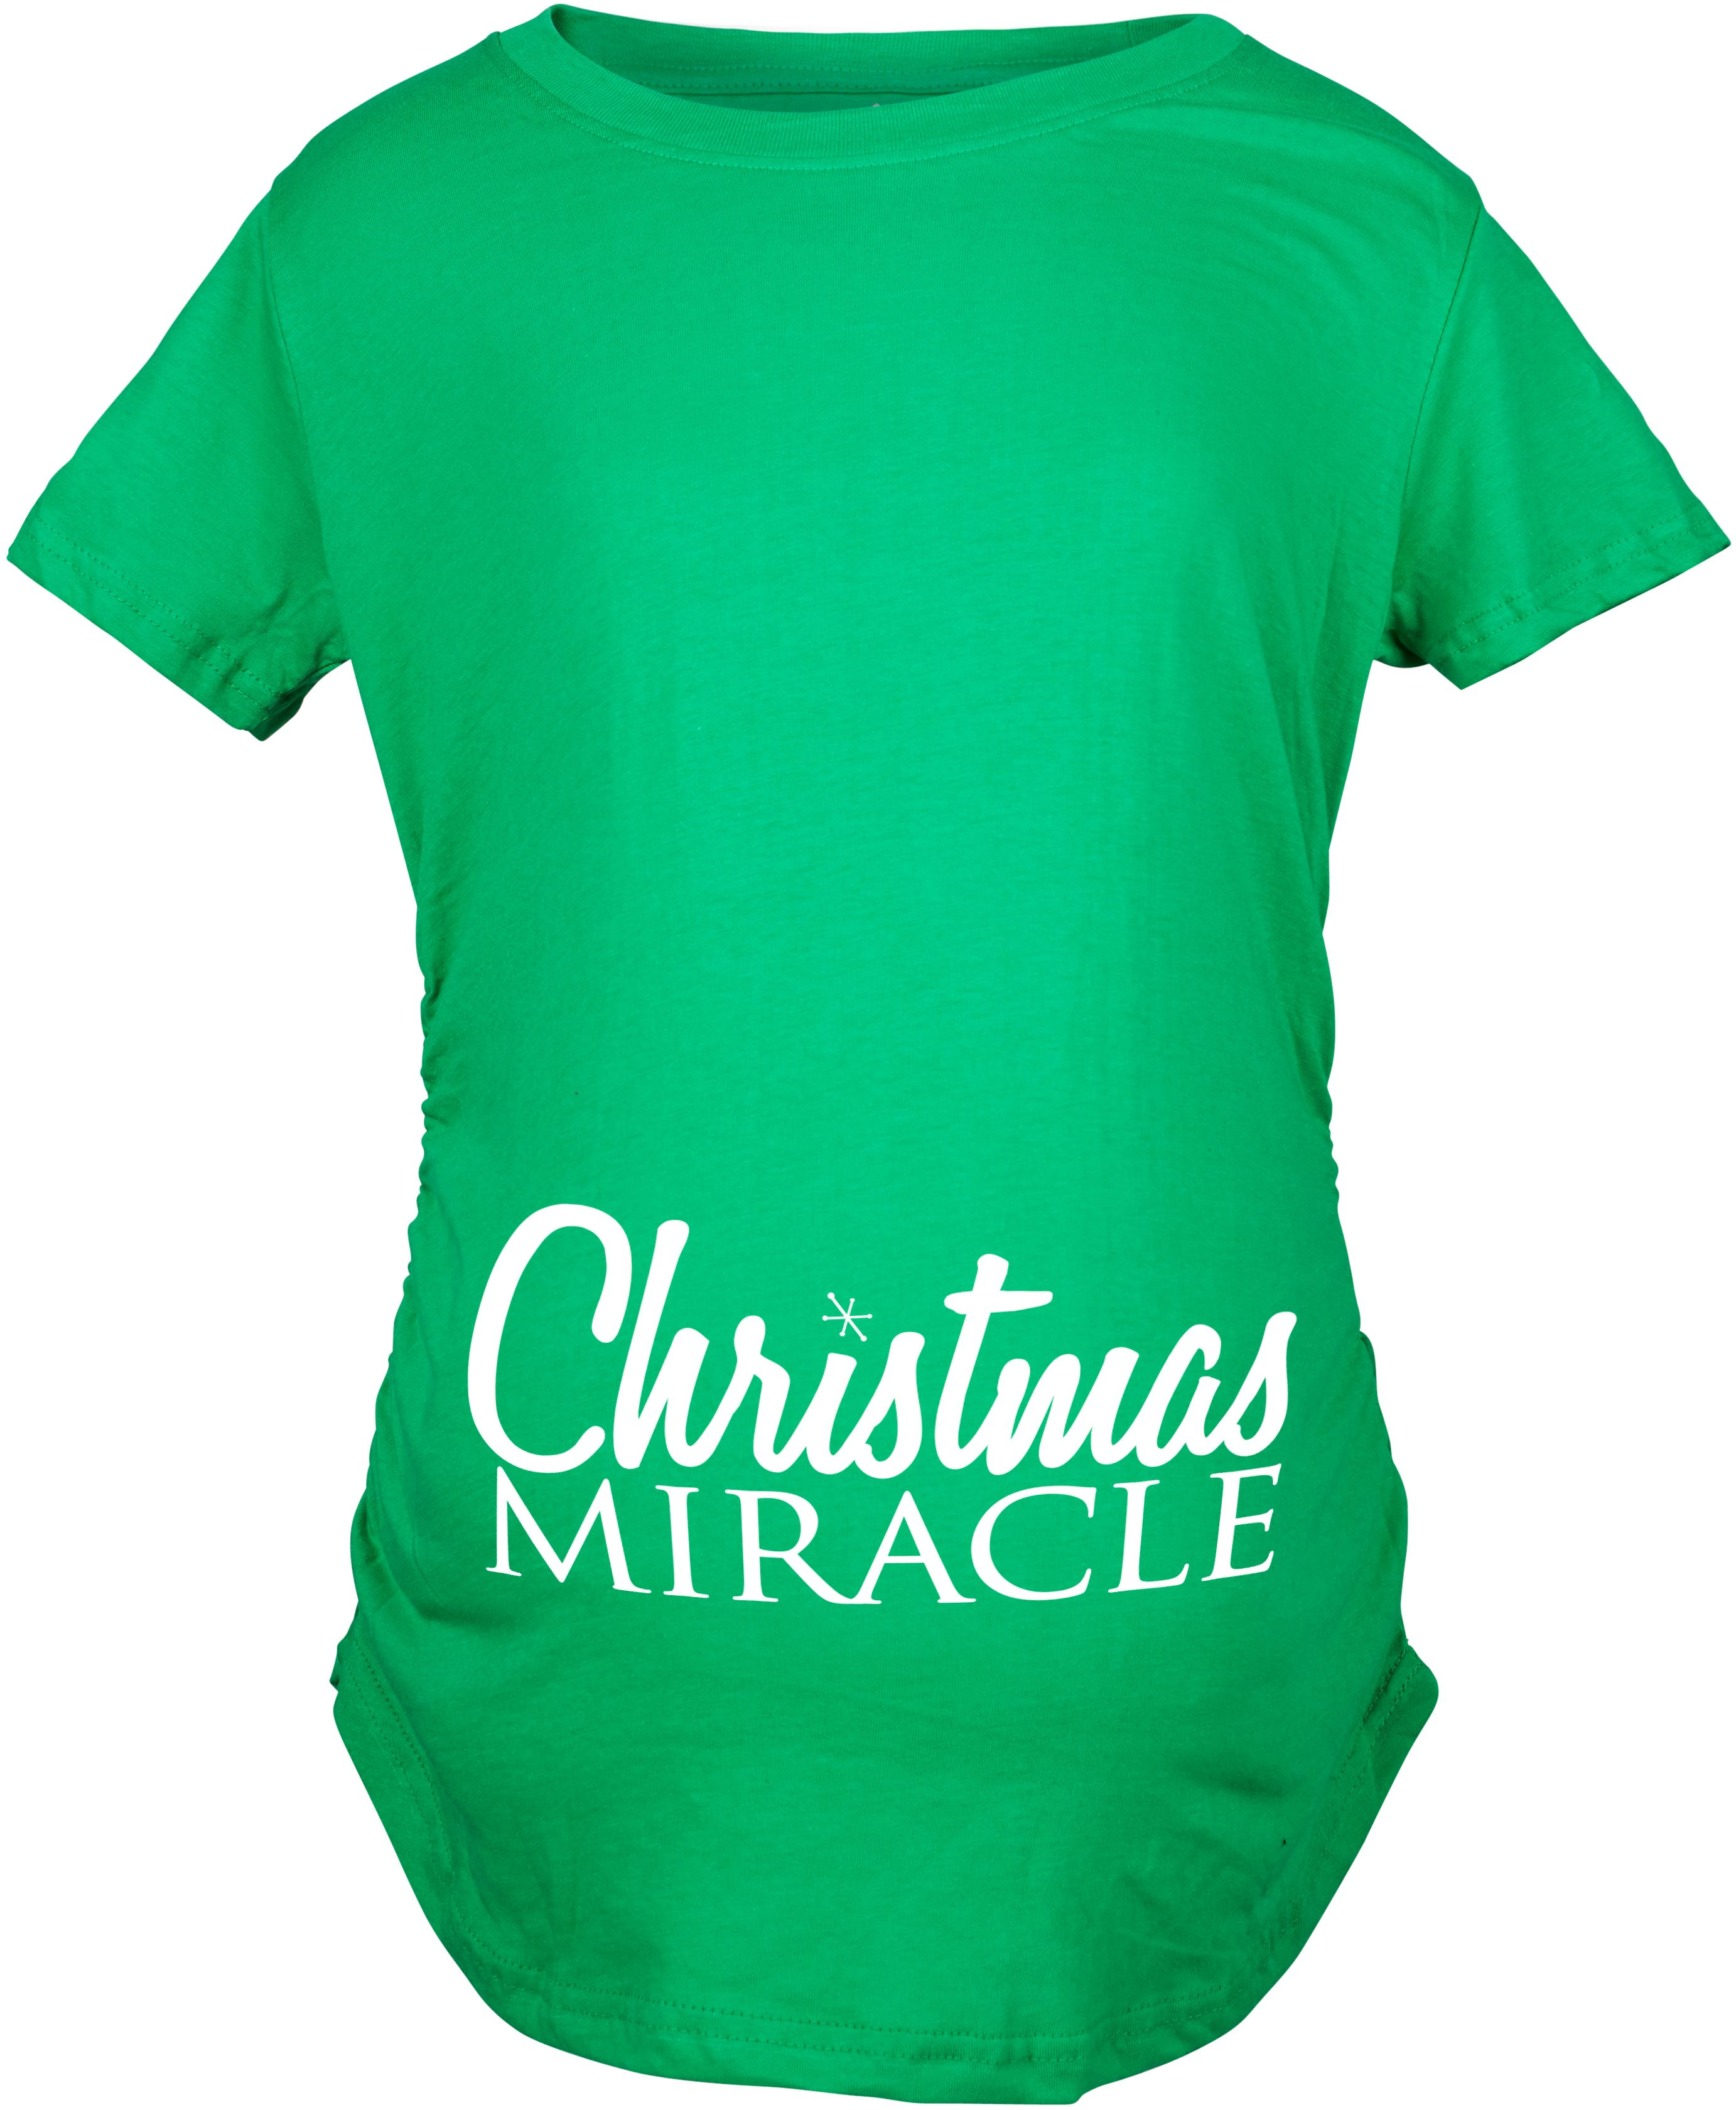 Crazy Dog TShirts - Maternity Christmas Miracle Cute Baby Announcement Pregnancy T shirt